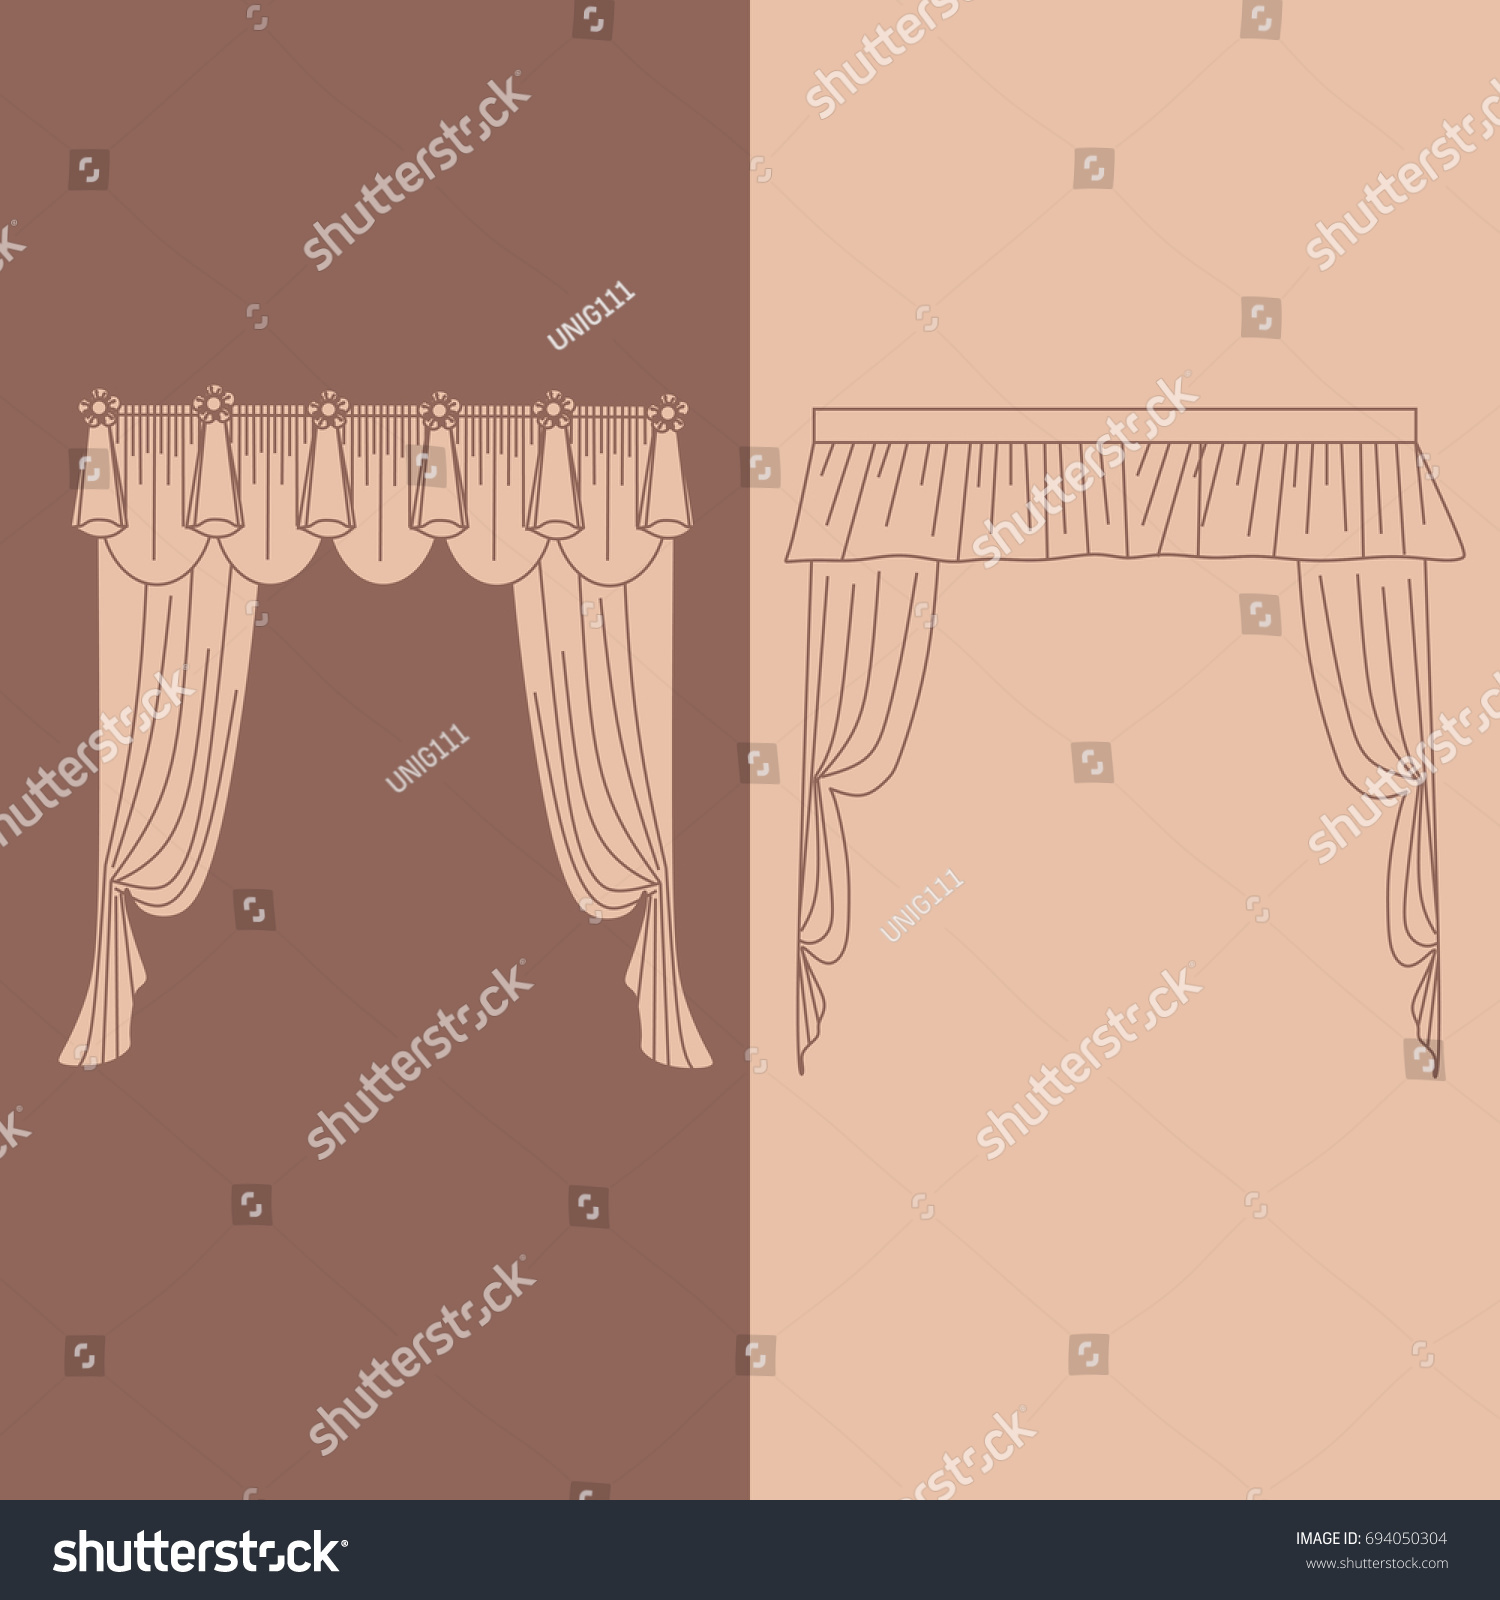 hight resolution of design ideas realistic icons collection isolated vector illustration curtains and draperies interior decoration